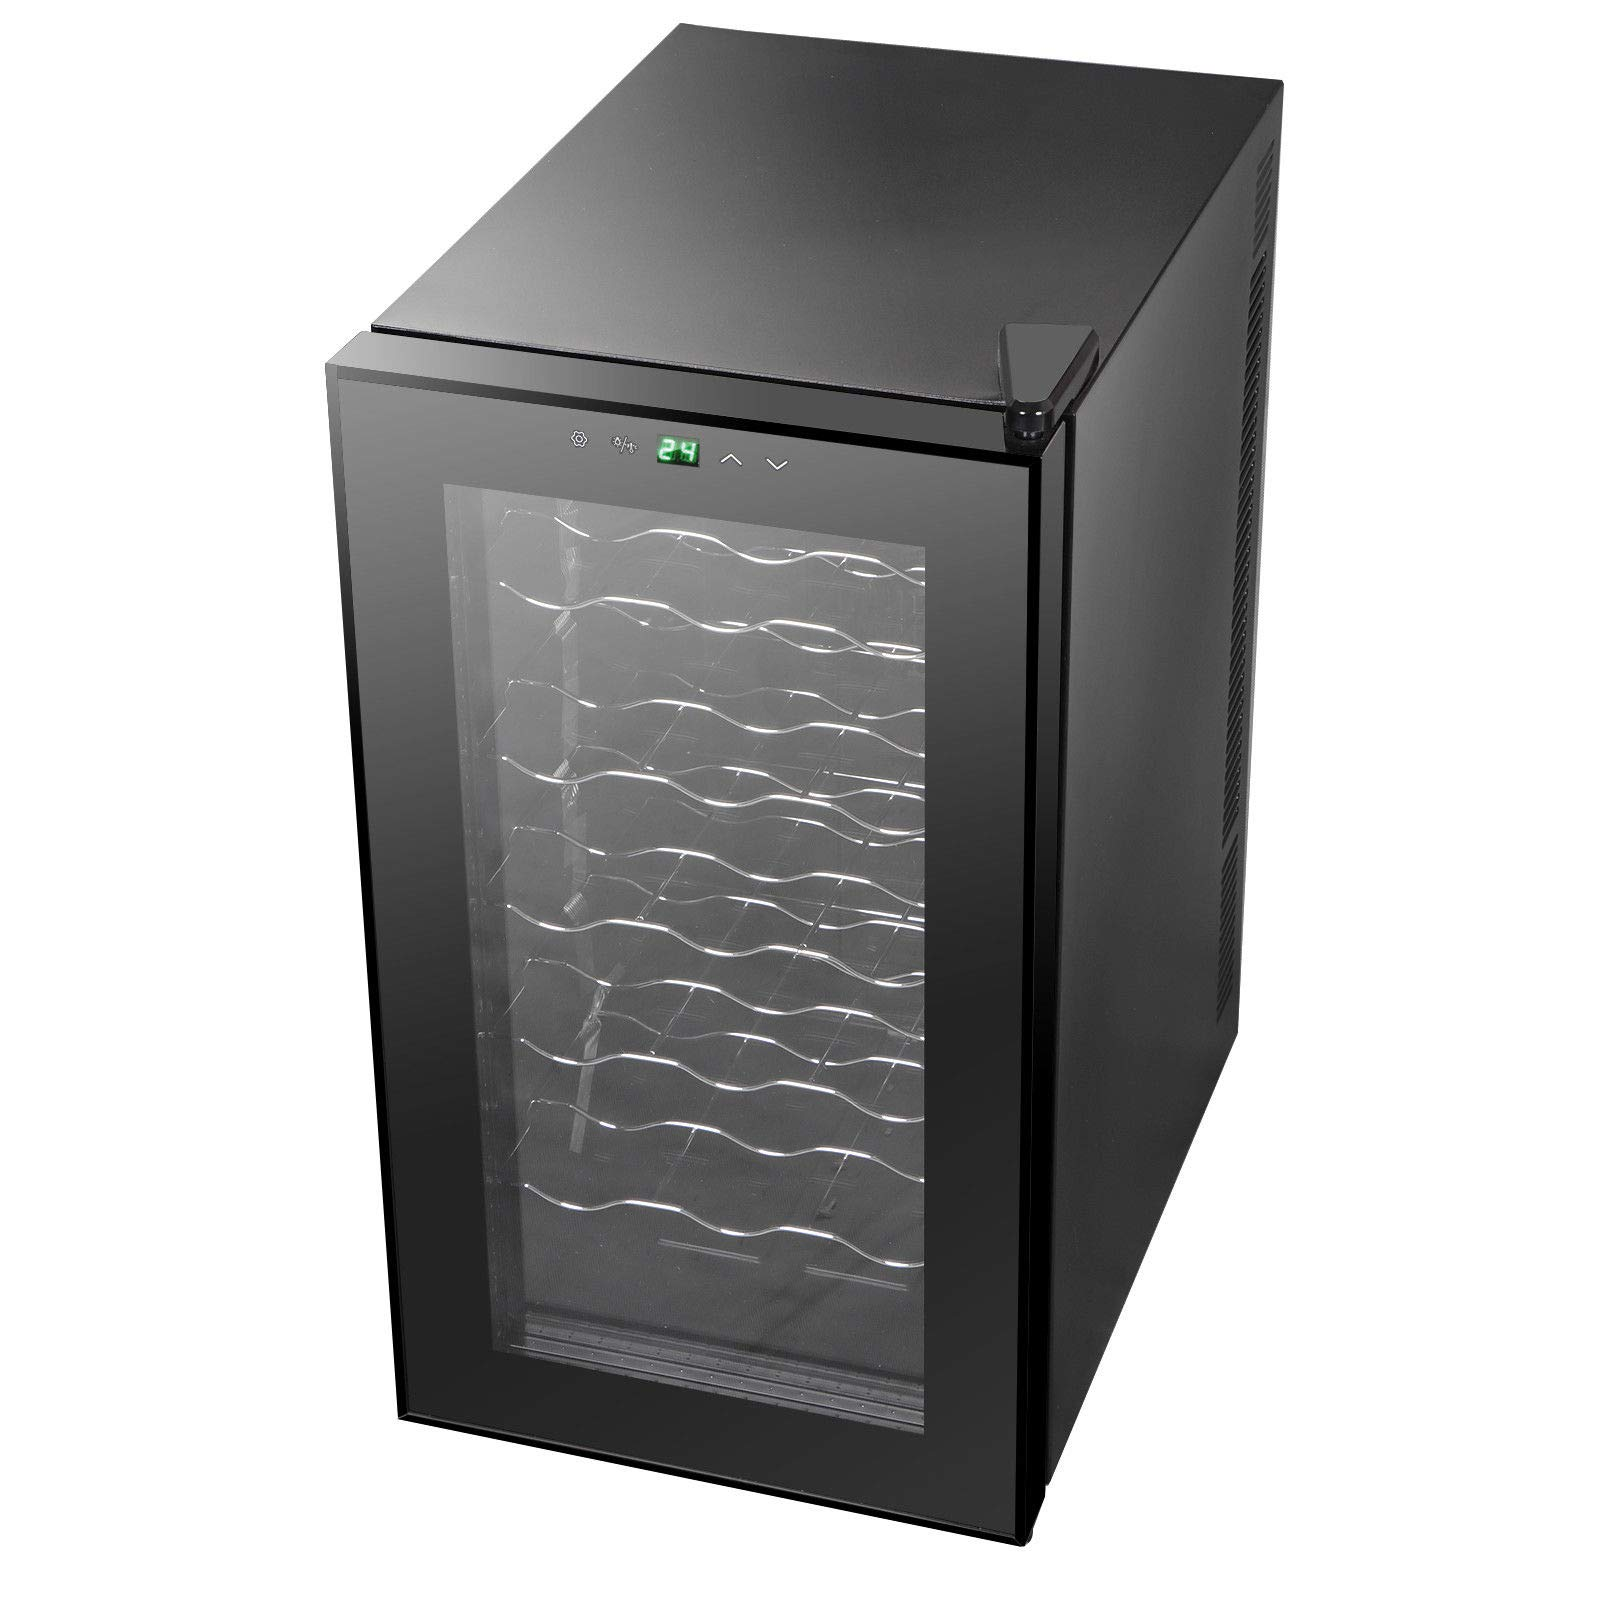 AK Energy 18 Bottles Wine Cooler Refrigerator Air-tight Seal Quiet 50-64 F Temperature Control by AK Energy (Image #4)